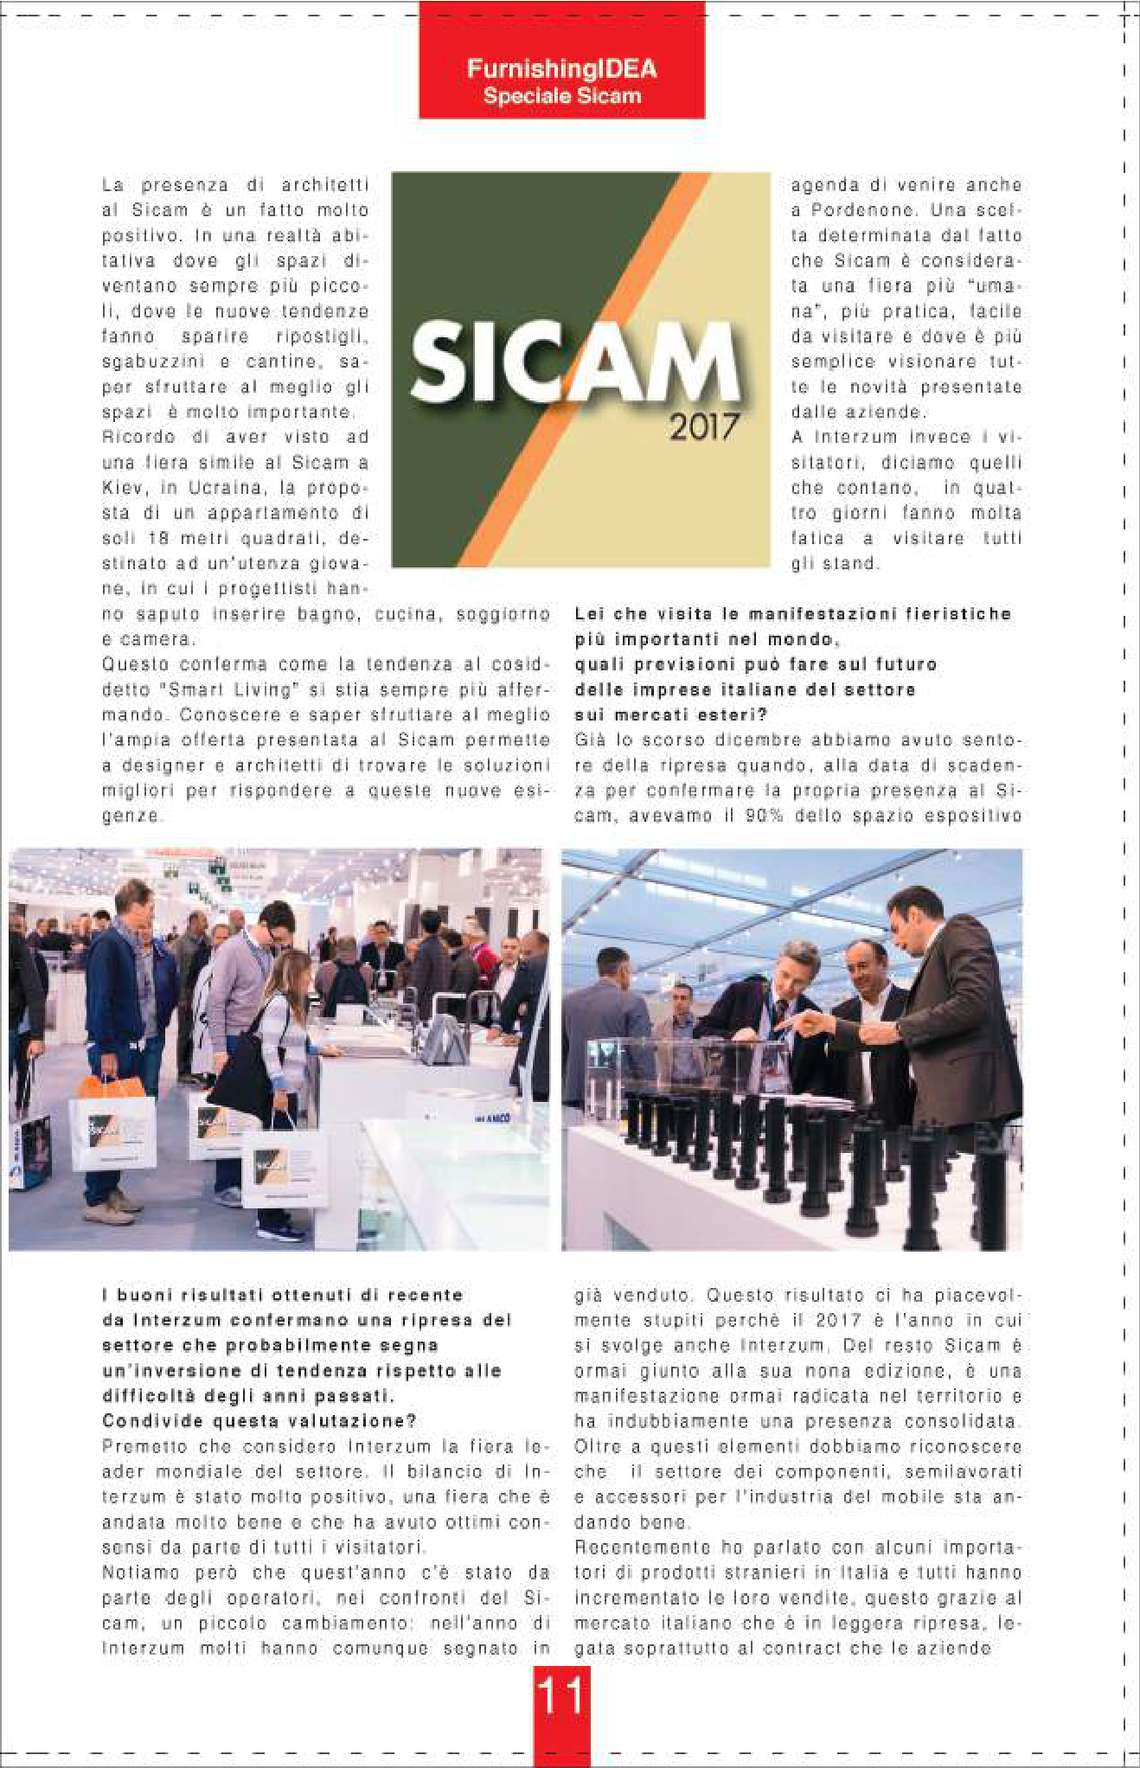 sicam-2017_journal_7_010.jpg